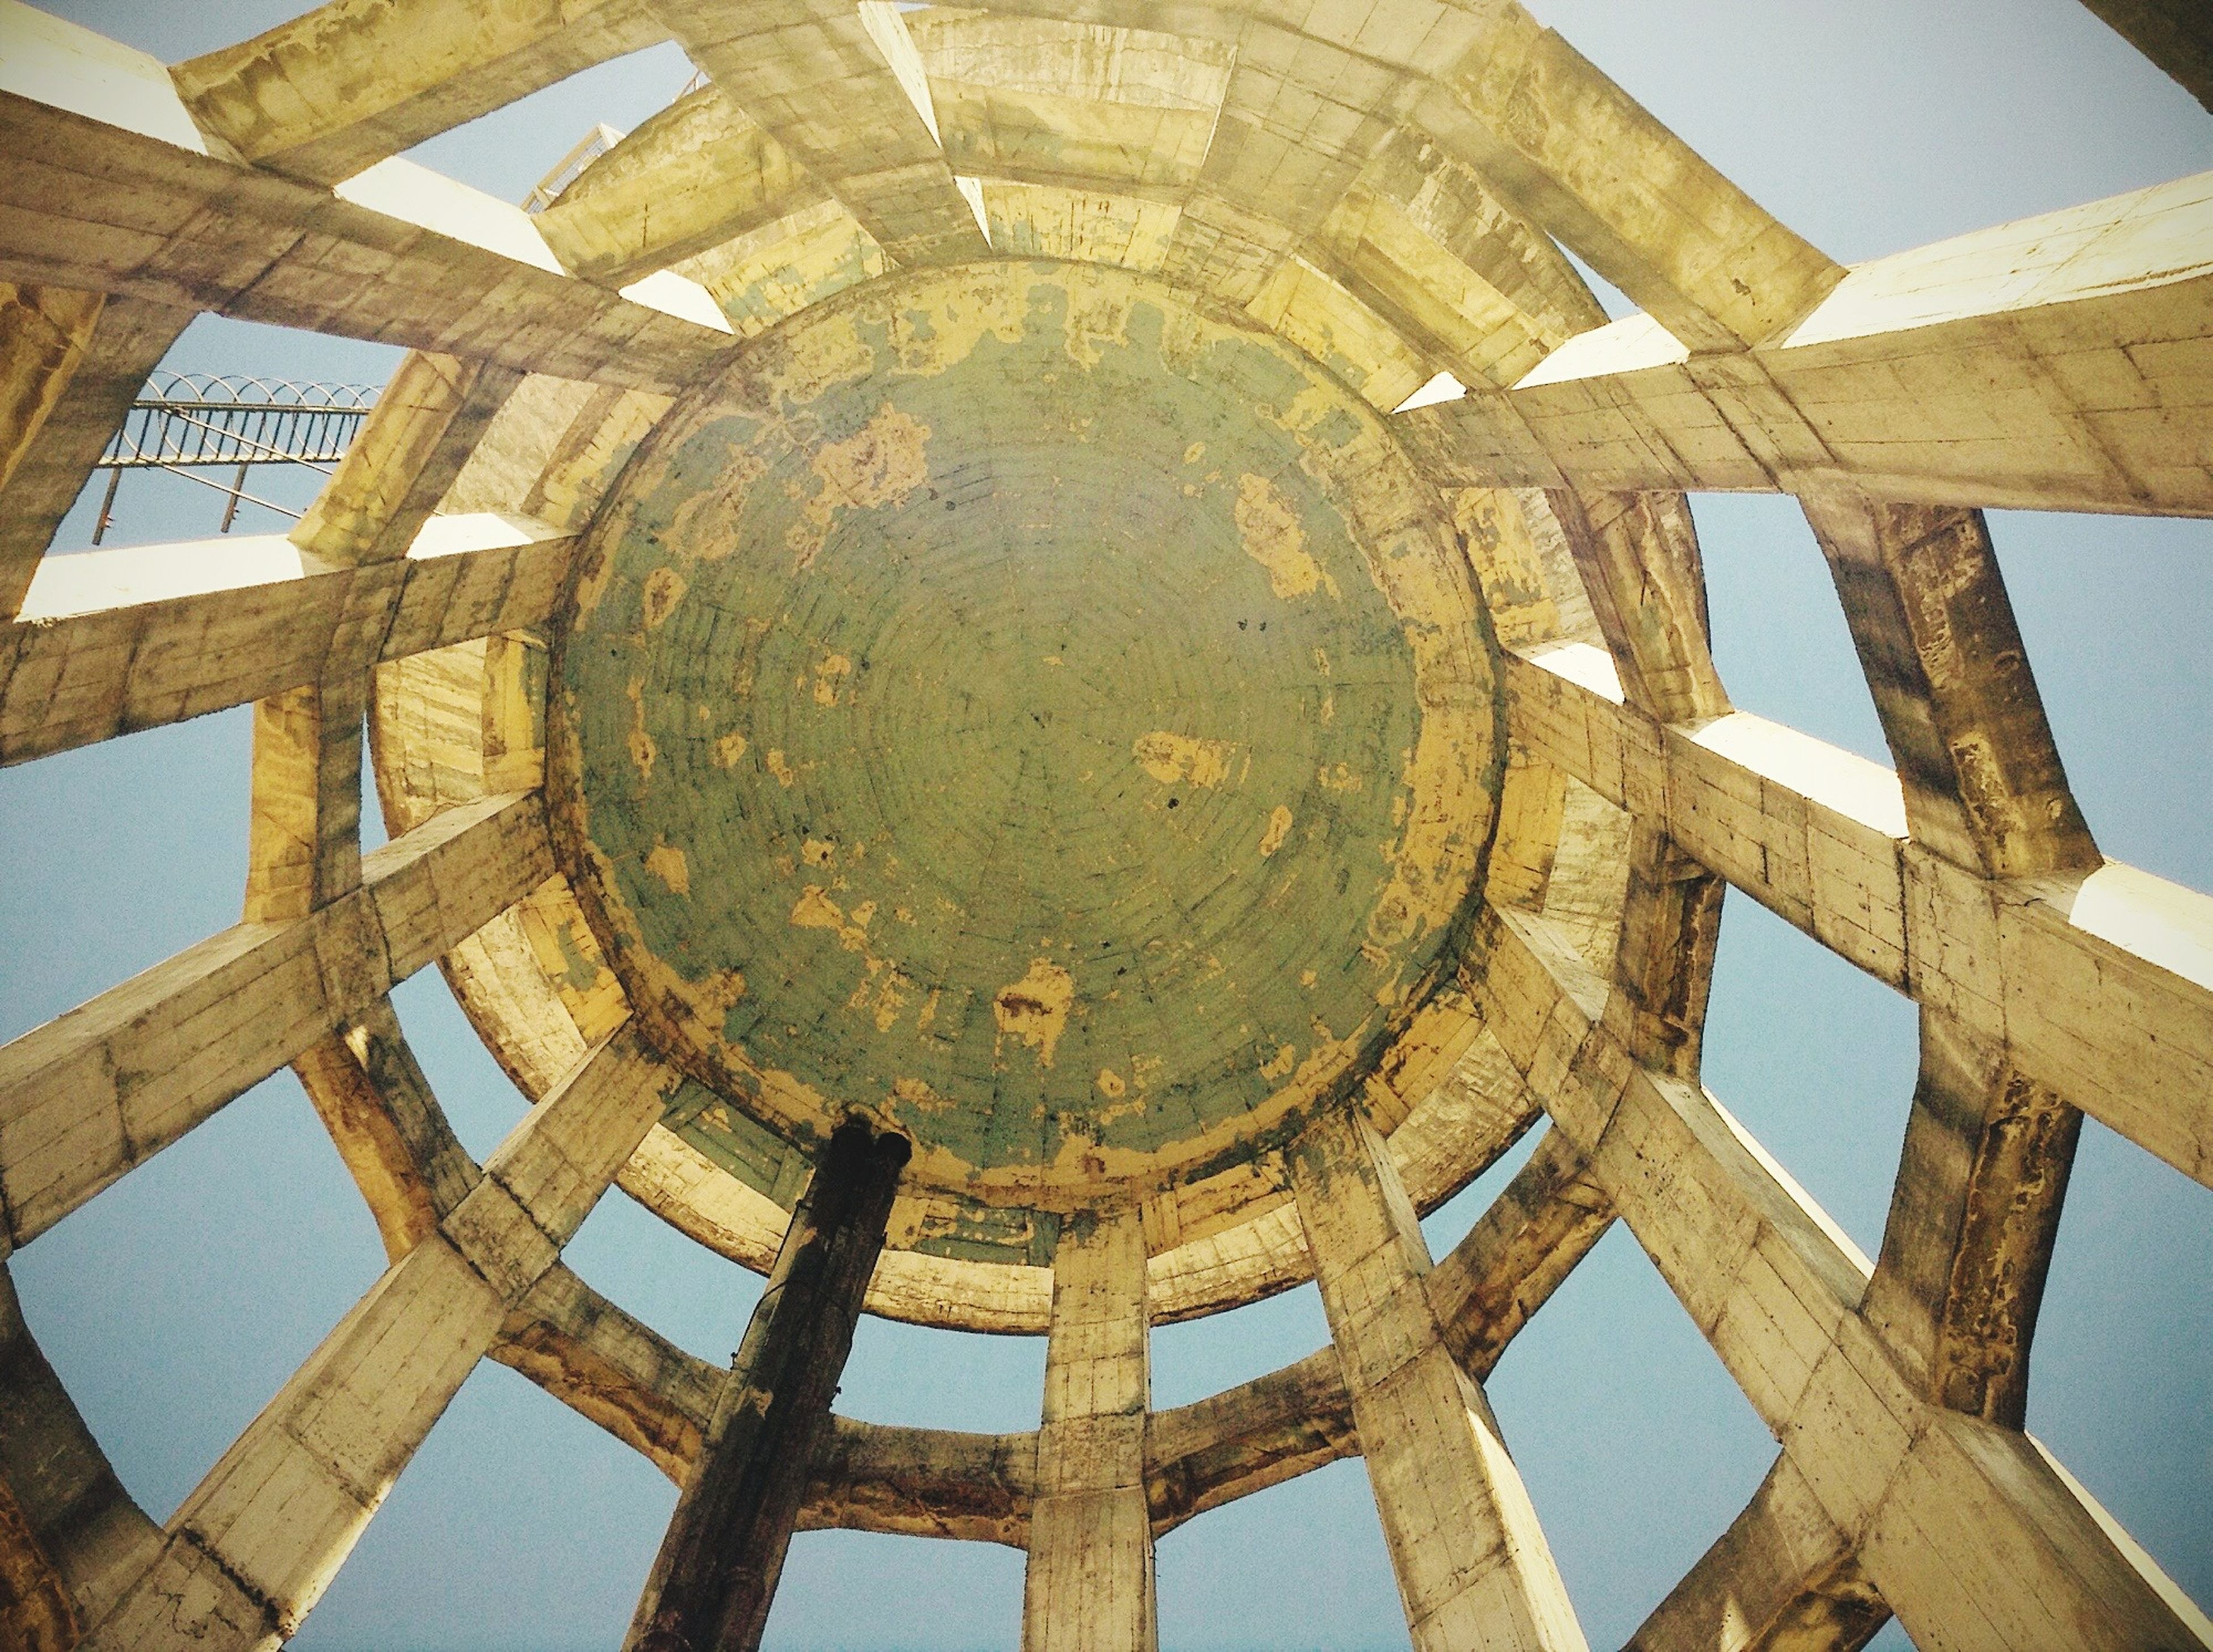 architecture, built structure, low angle view, old, history, abandoned, damaged, indoors, deterioration, obsolete, circle, weathered, building exterior, run-down, the past, metal, old ruin, geometric shape, no people, day